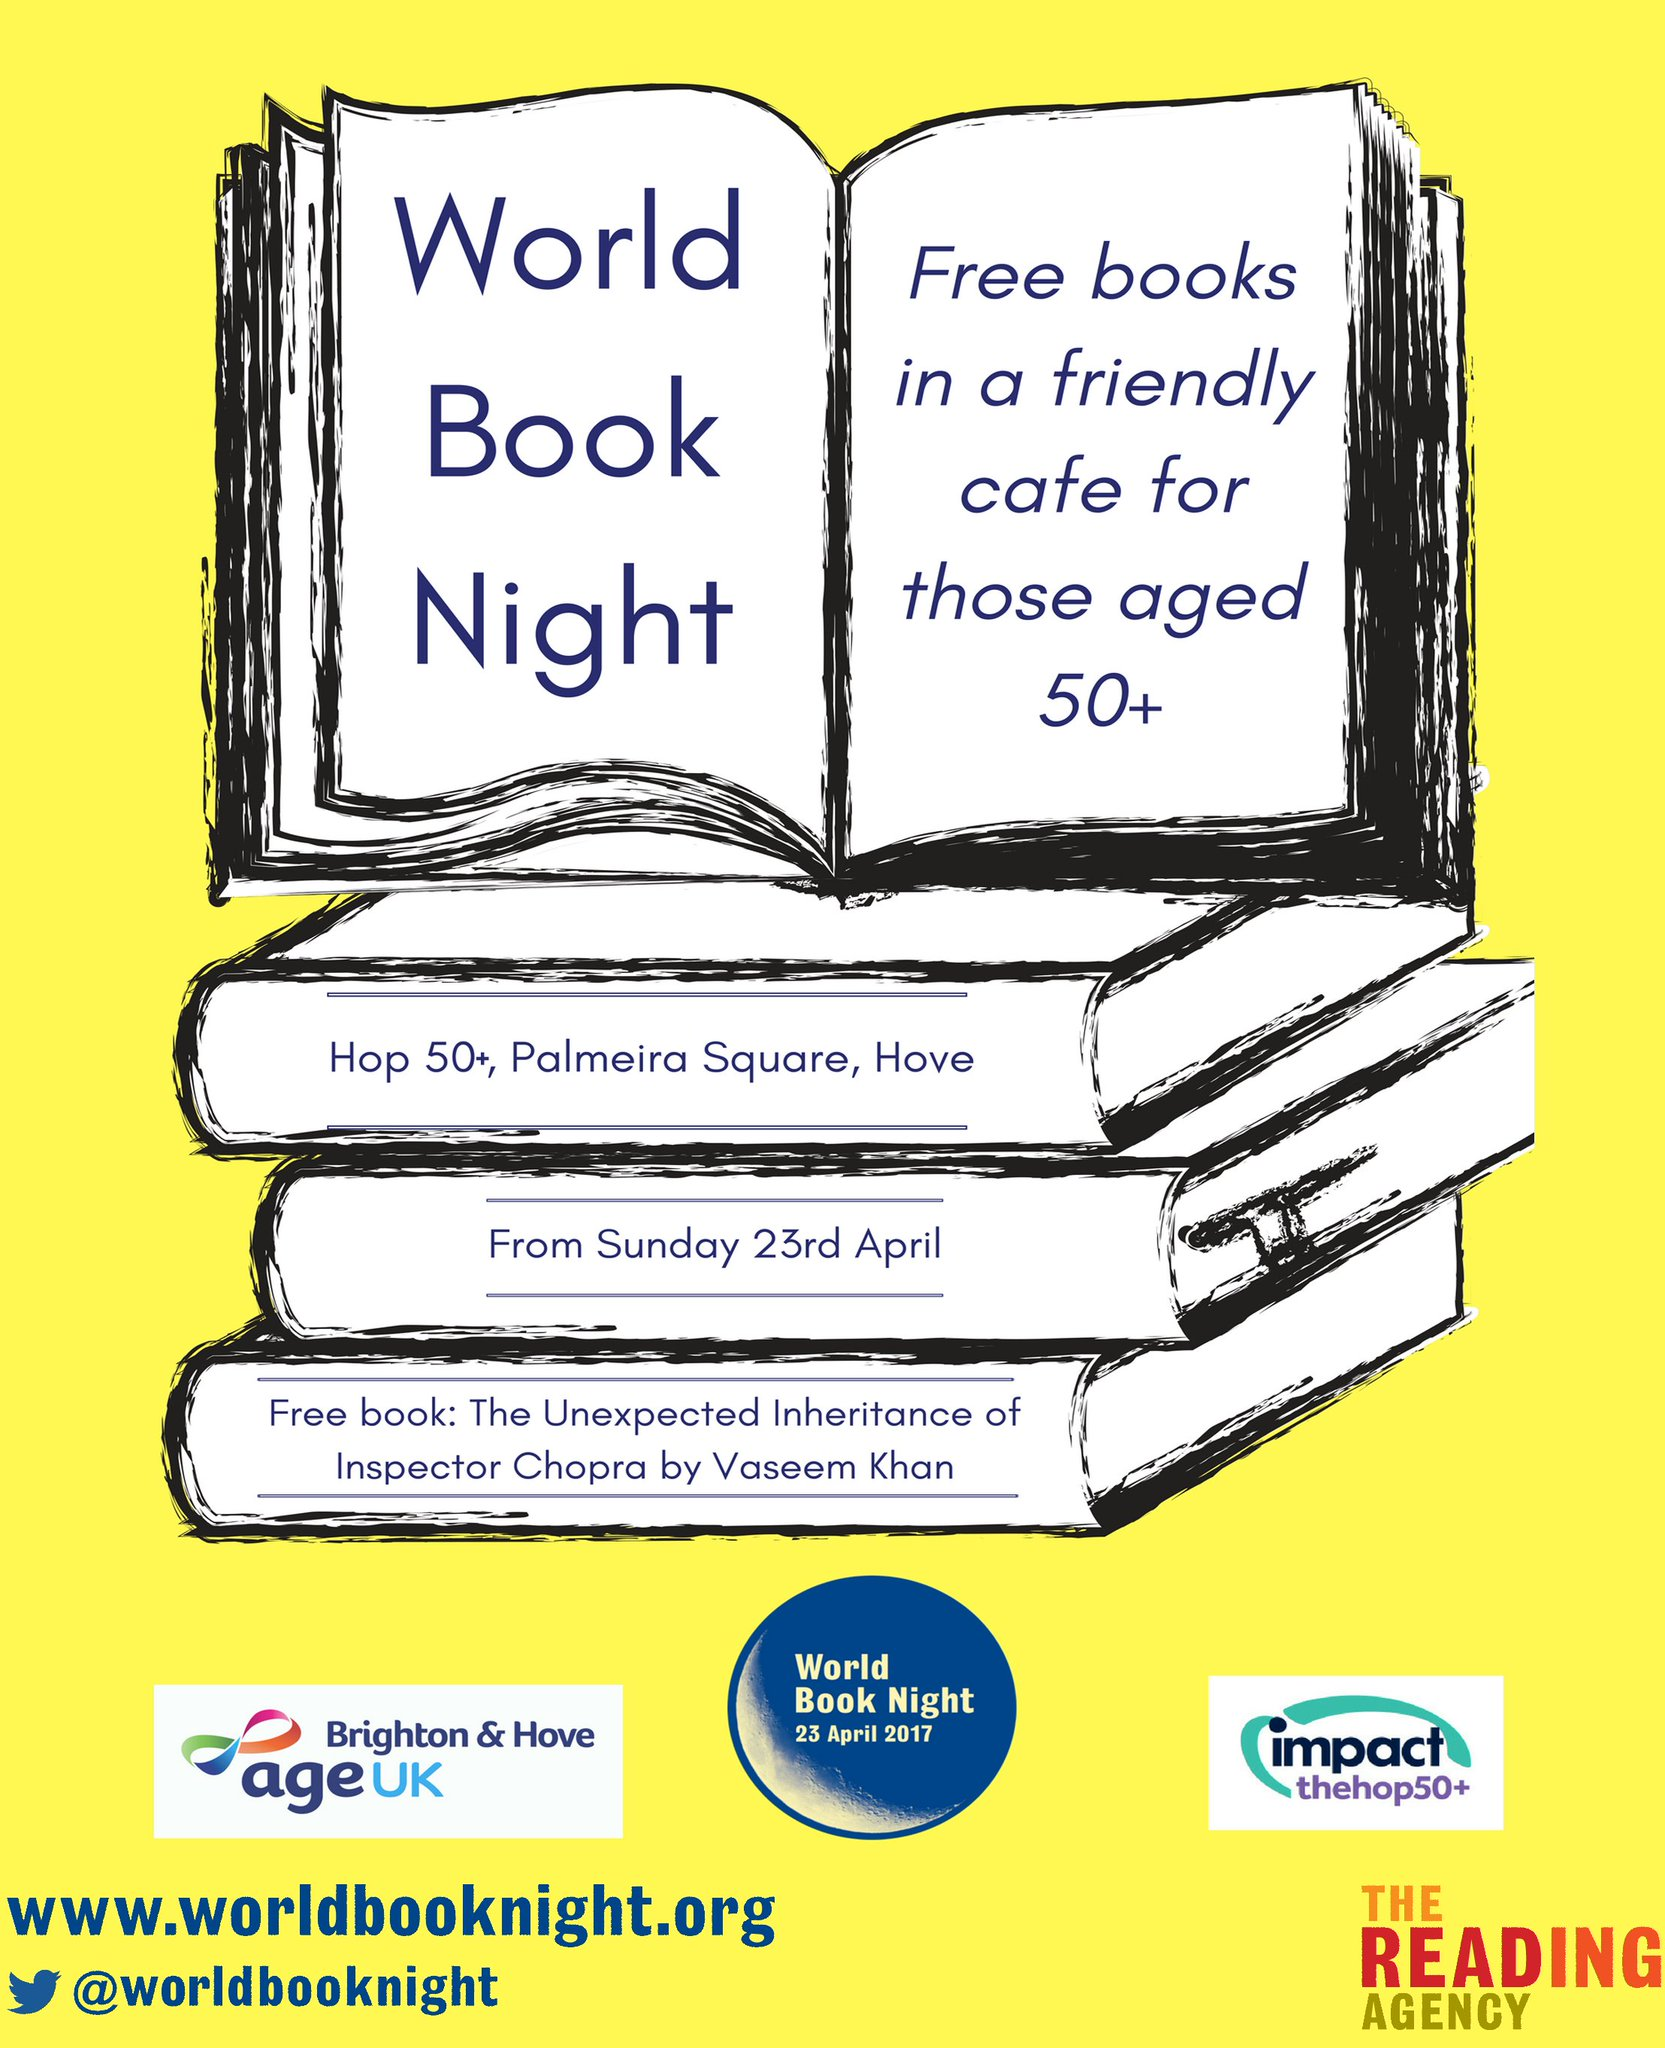 Great opportunity on Sunday 23rd to pick up a free book, Age UK Brighton & Hove info and to find out about @Impactsussex Hop 50+ ! https://t.co/SMJRGkNSBy